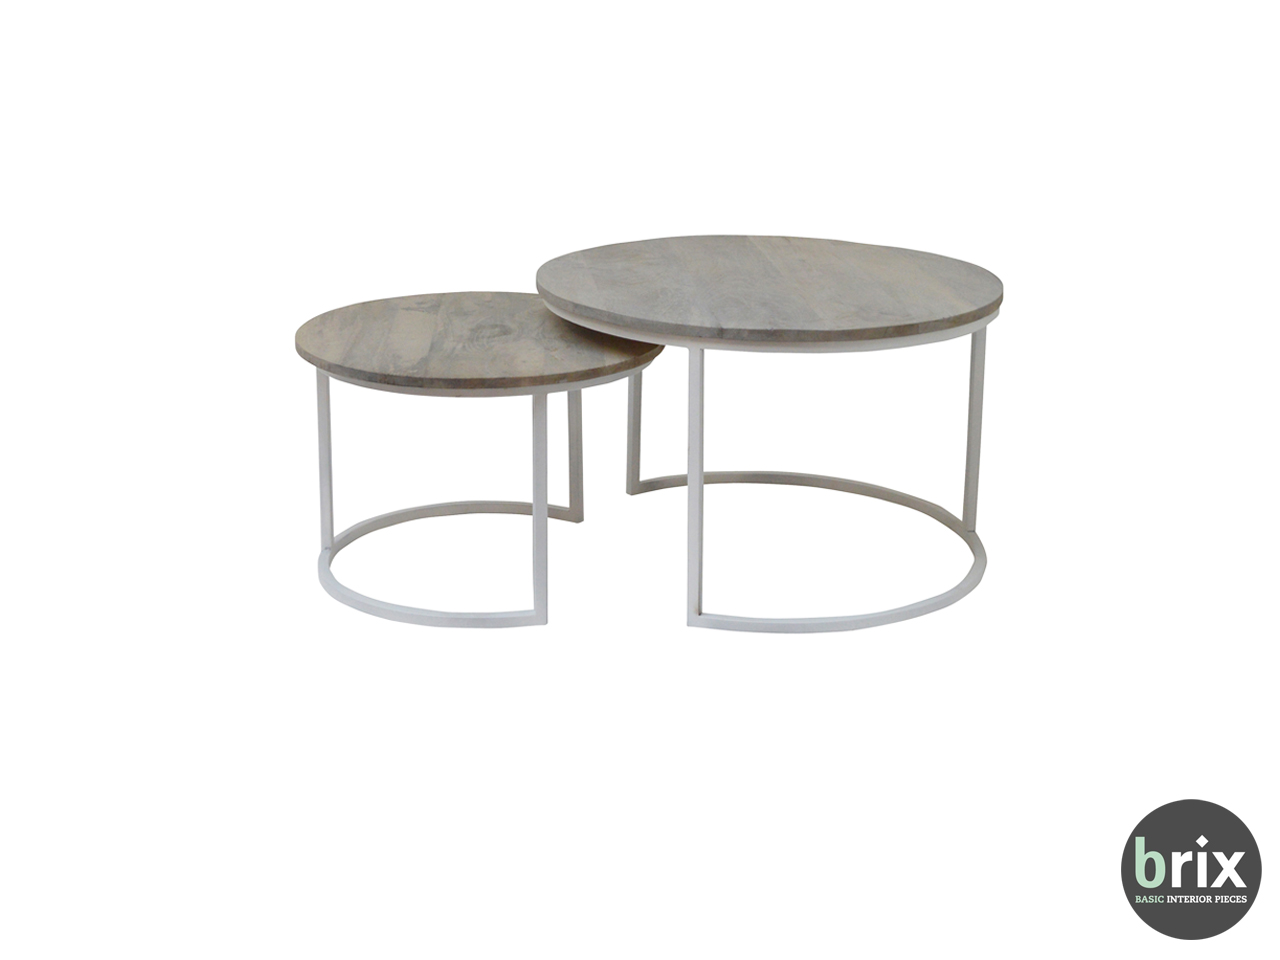 11502 Salontafel Freddy (set of 2) White Steel and grey mango wood